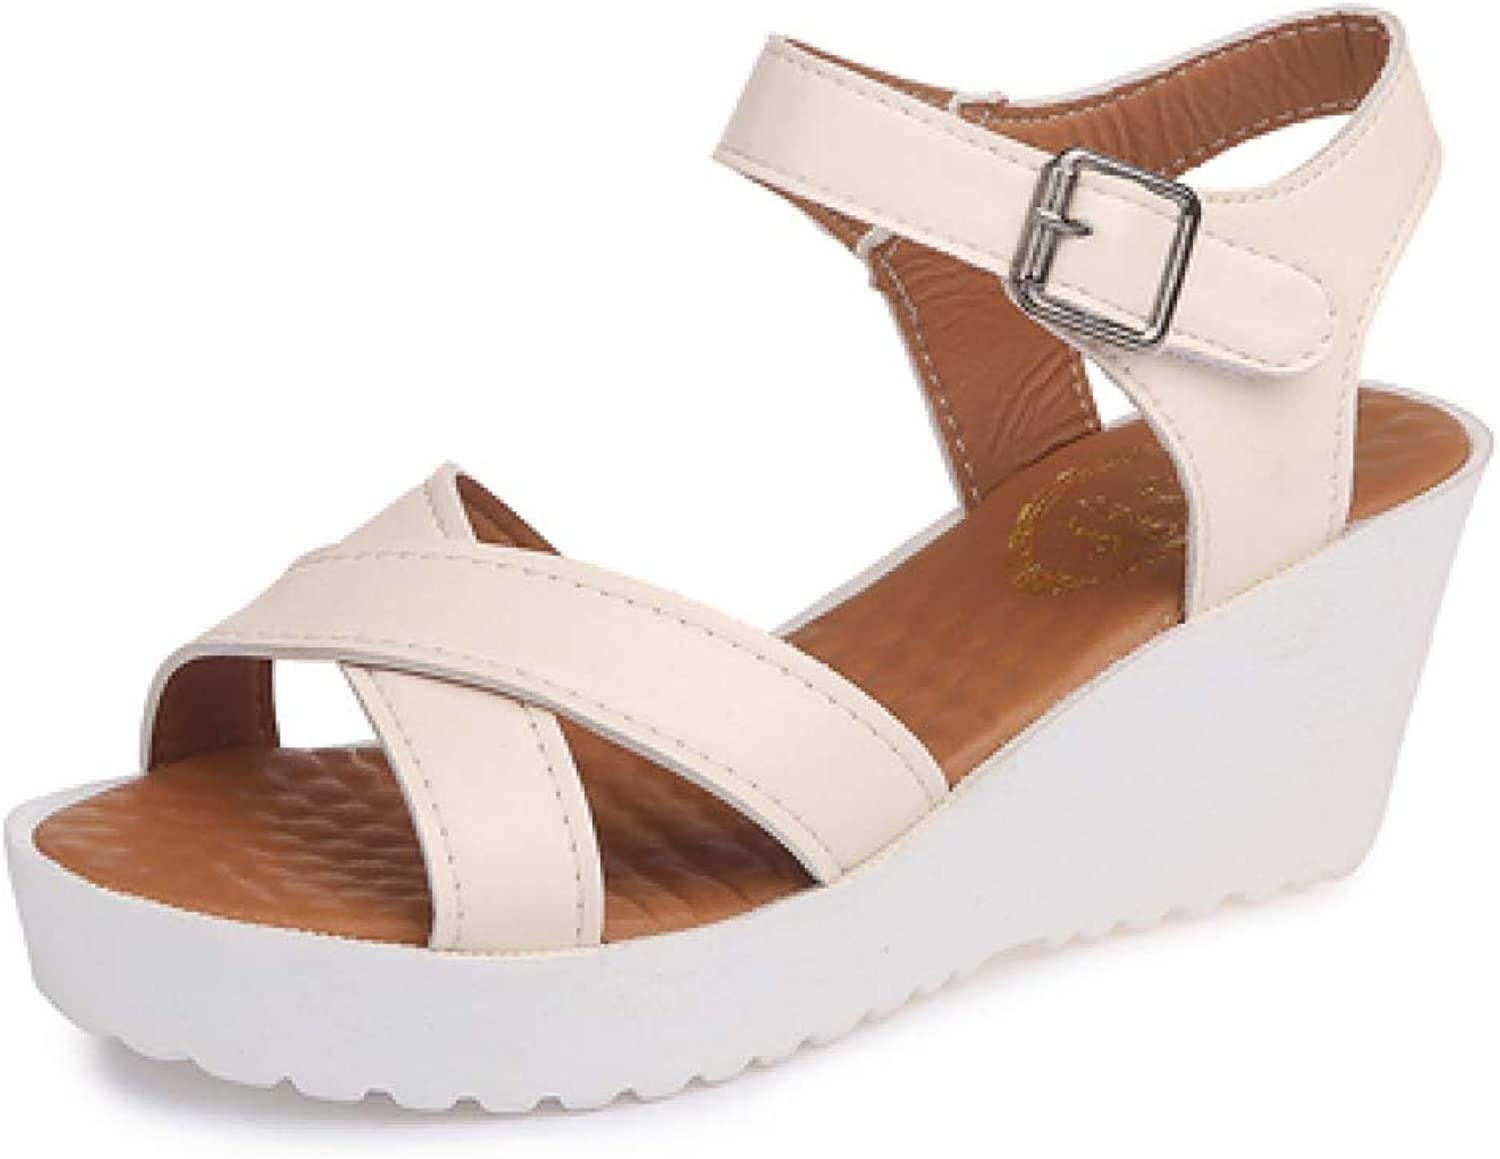 Women's Platform Wedges Mid Heel Summer Buckle Strap Sandals Casual Ladies Antislip Soft Sandals